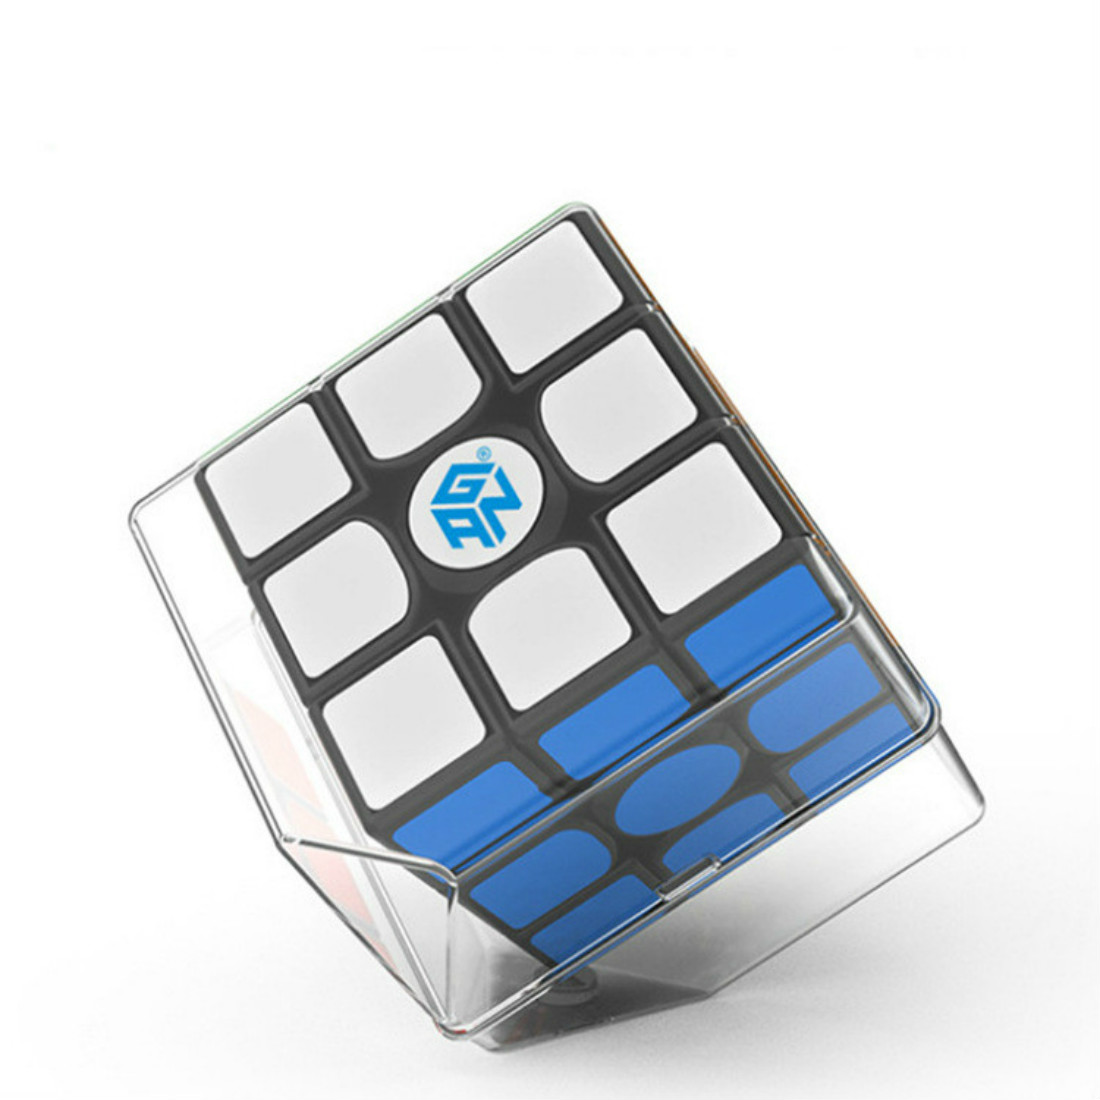 Gan 356 Air SM 3x3x3 Update Version 2019 Magnetic Speed Cube Professional 3x3 Magic Cube Puzzle